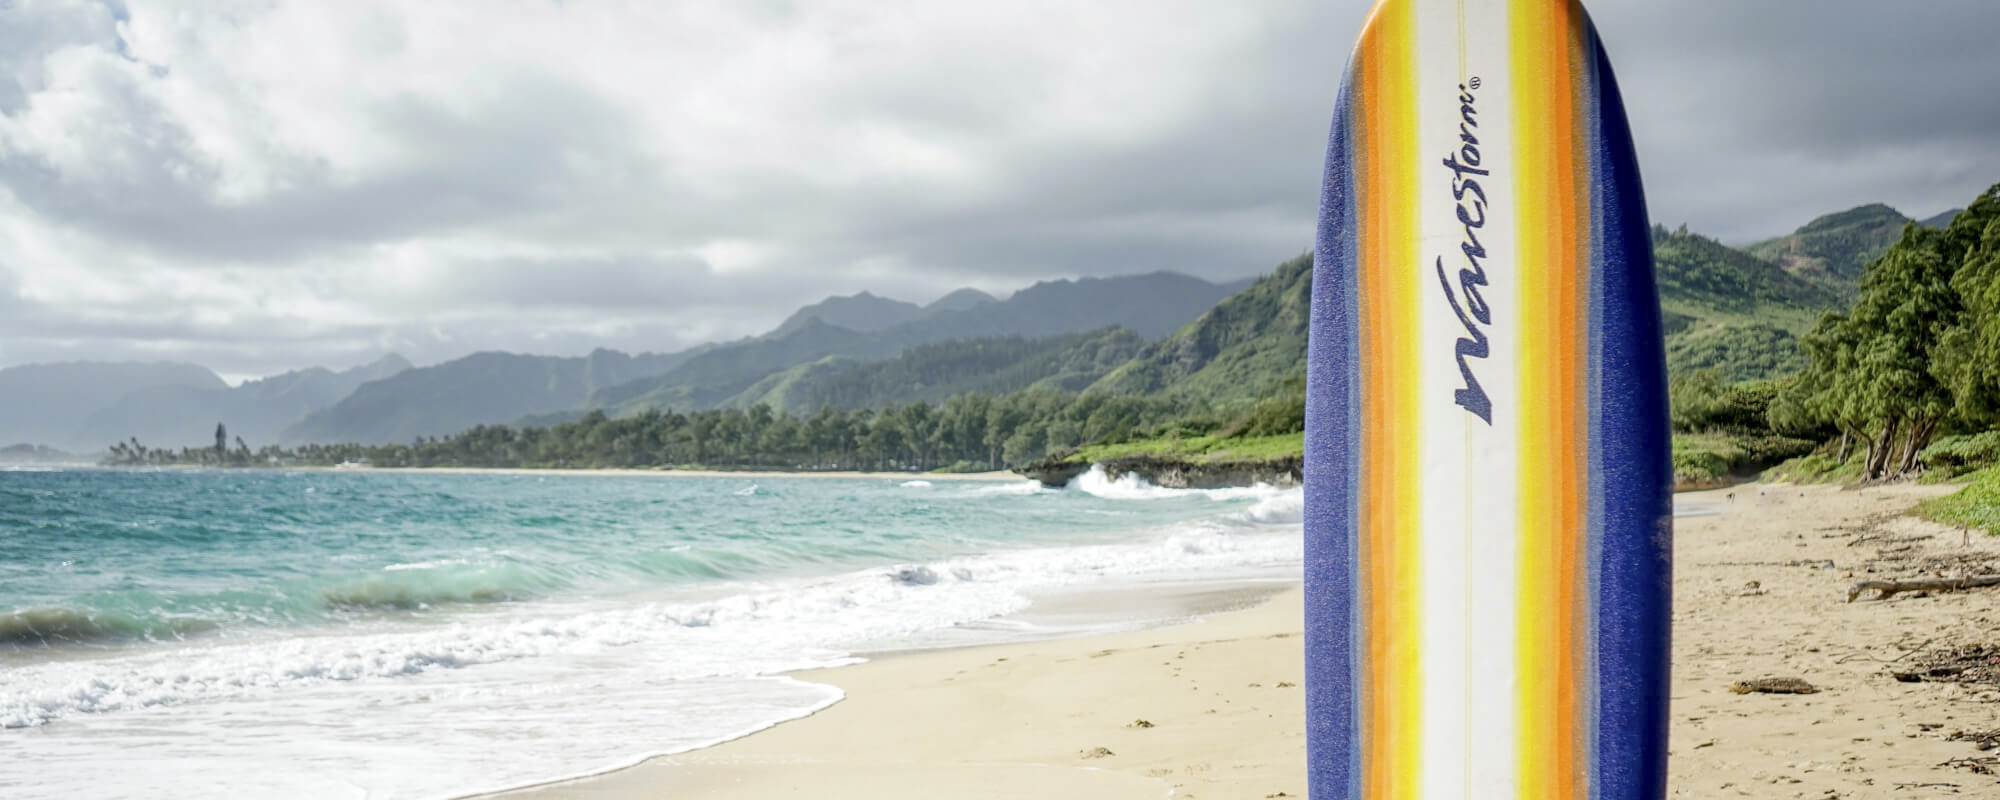 North Shore Oahu beginner surfboard rentals